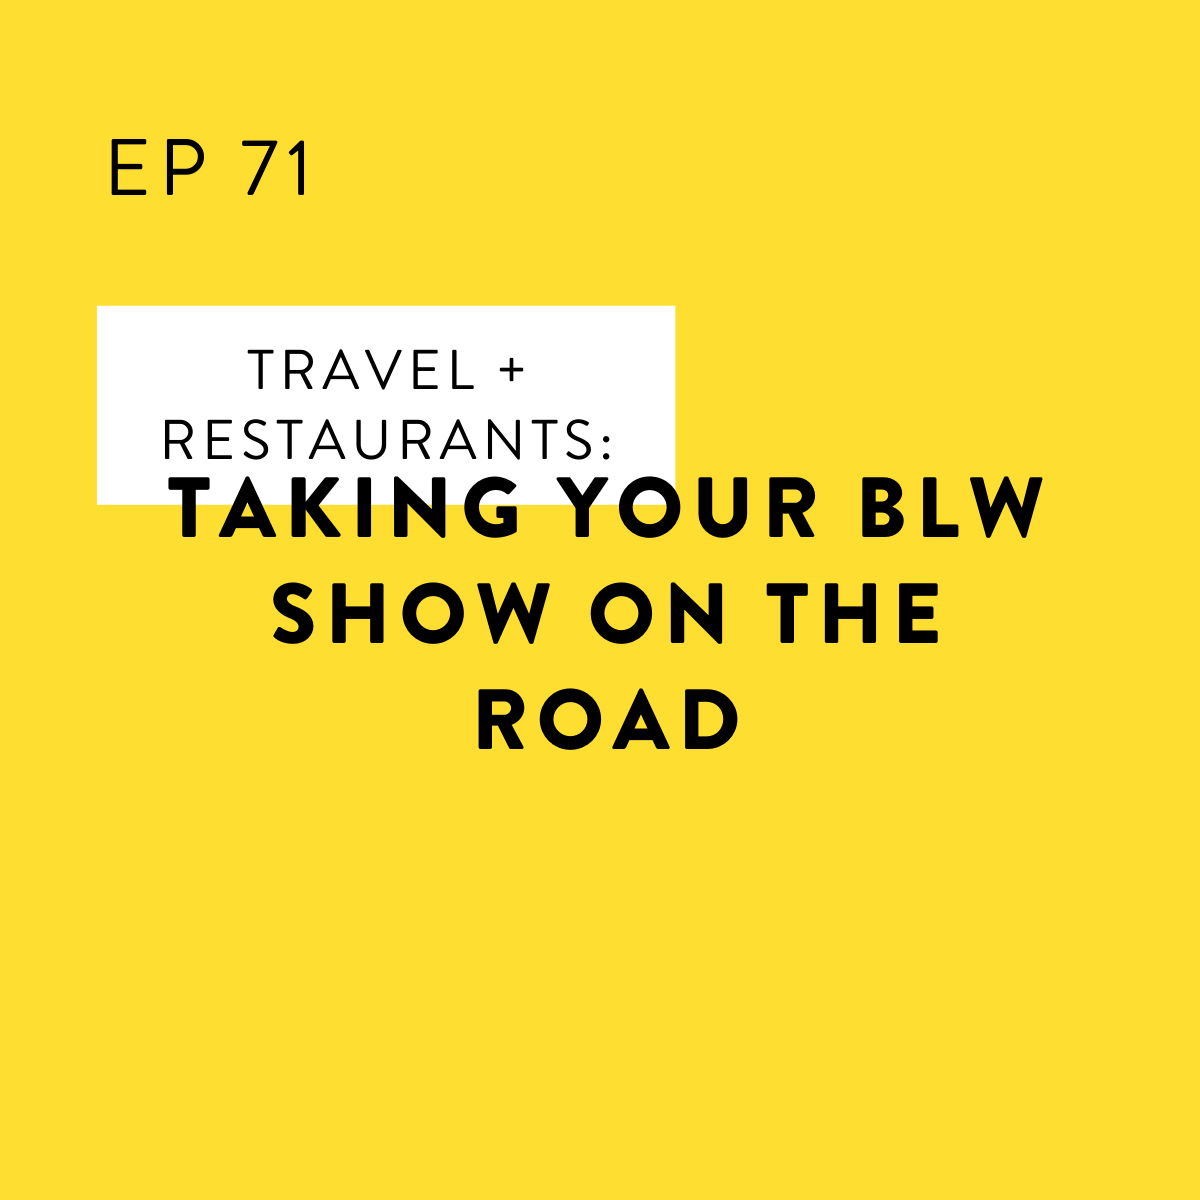 Travel + Restaurants: Taking Your BLW Show on the Road